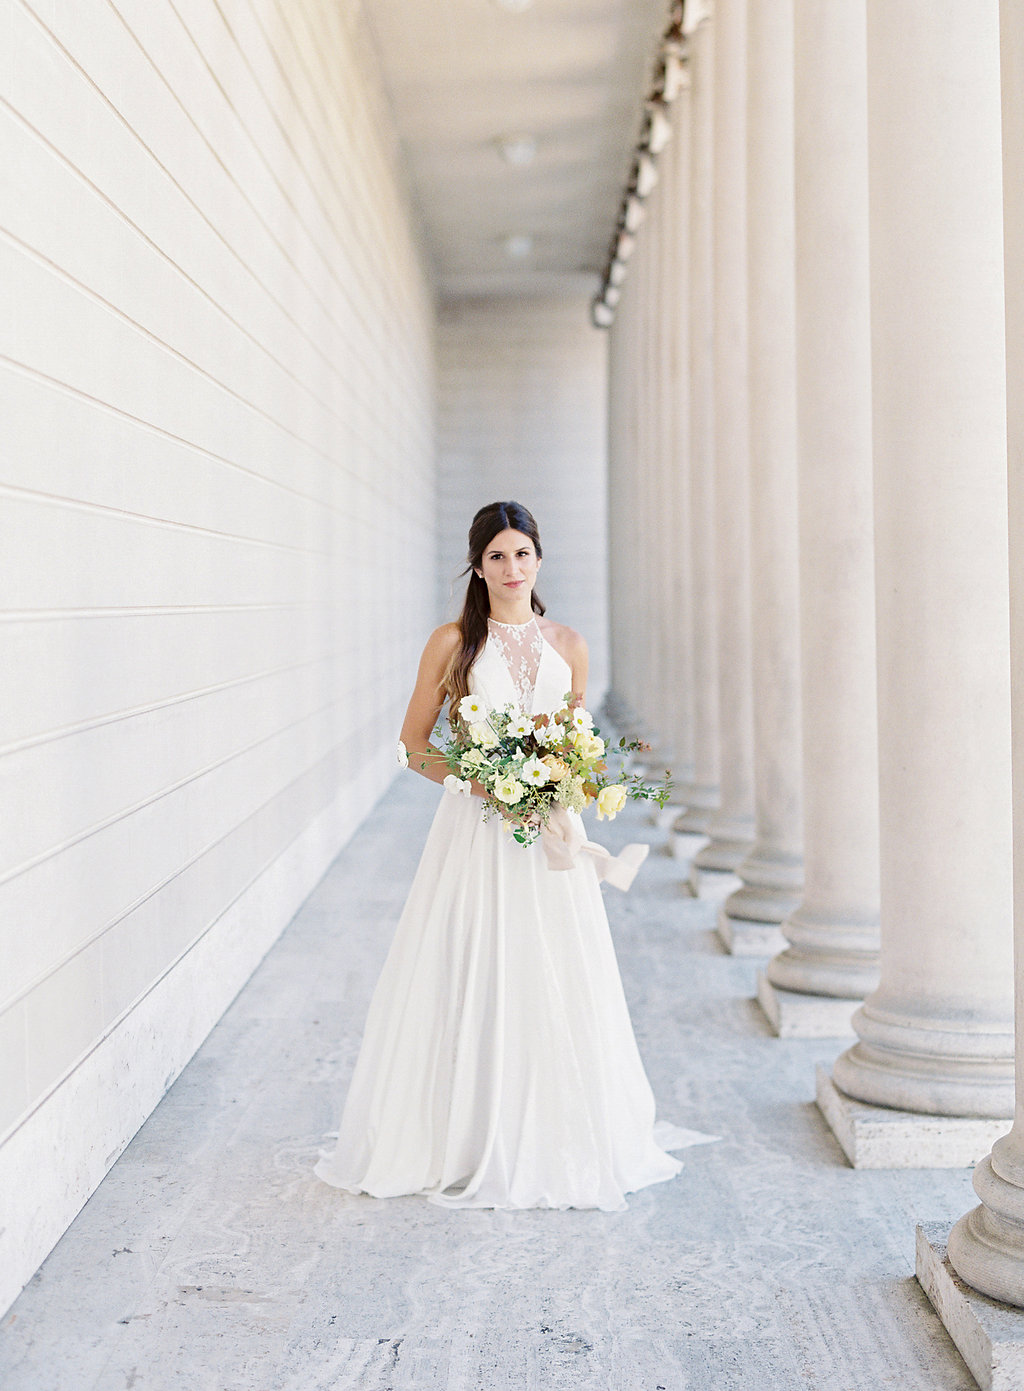 Meghan Mehan Photography - California Wedding Photography - Legion of Honor 002.jpg